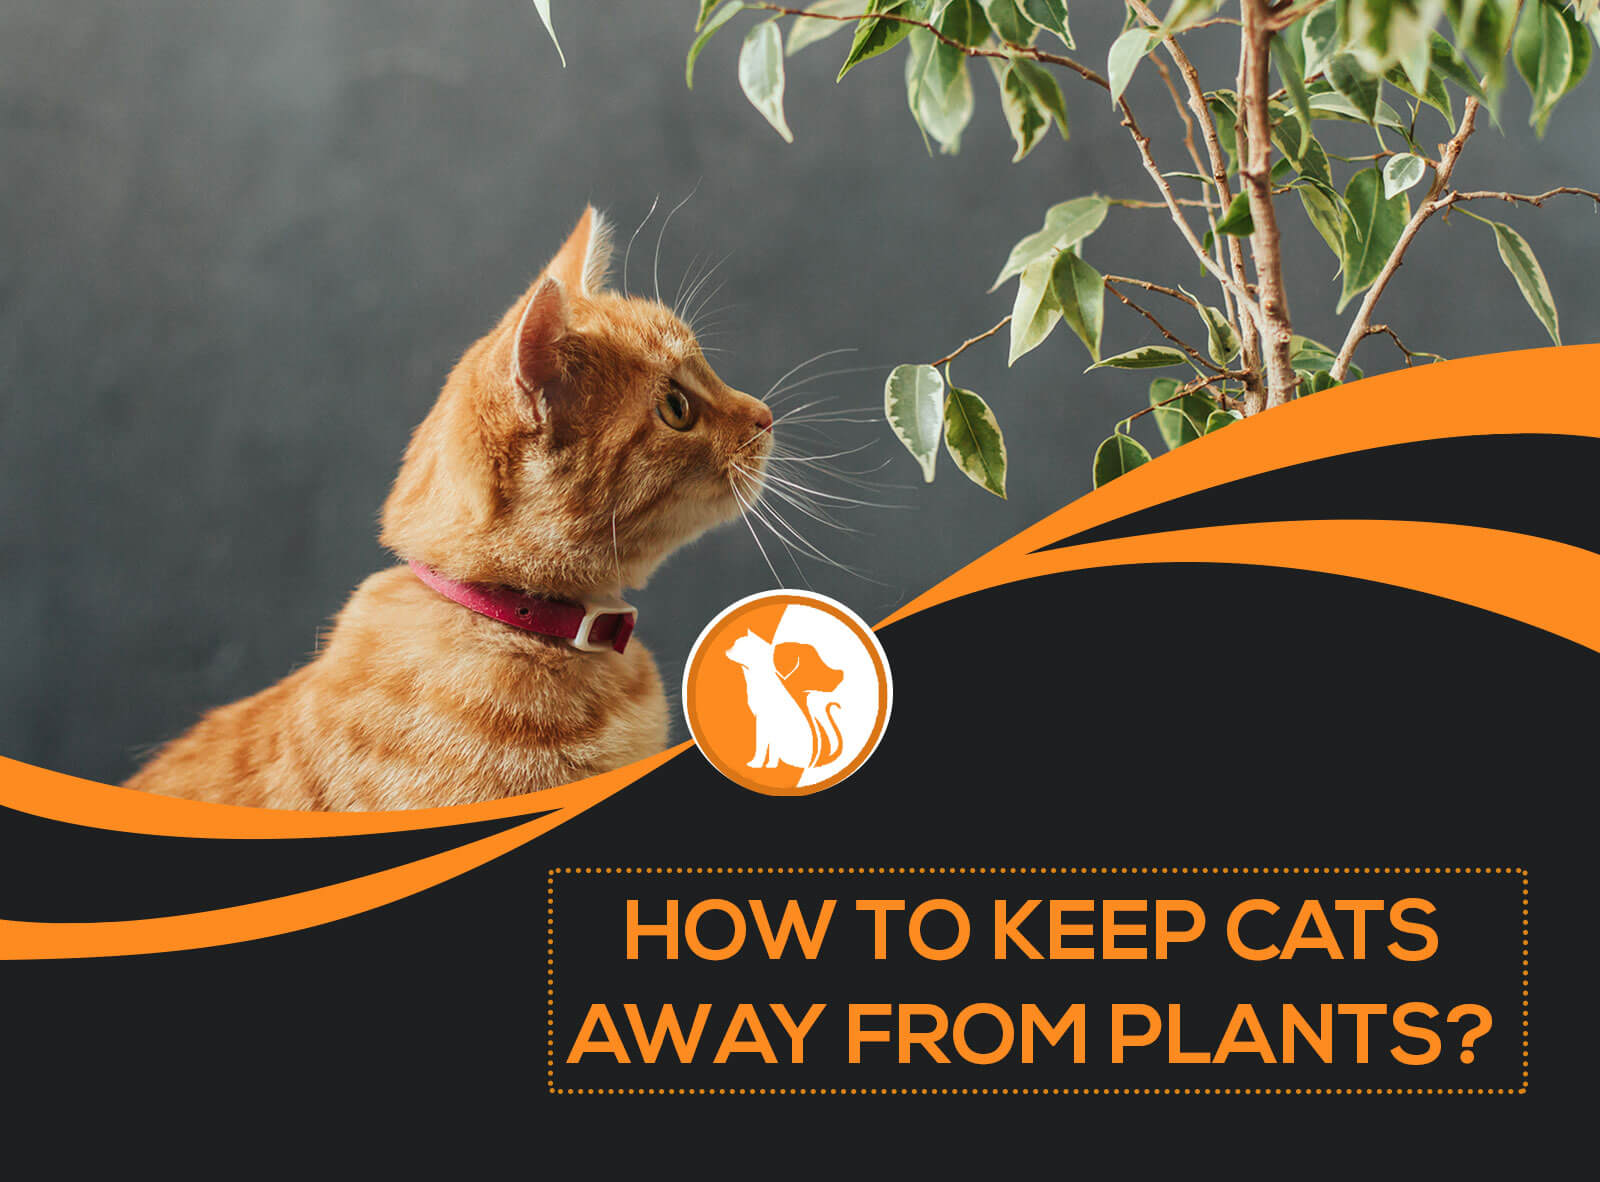 How to Keep Cats Away from Plants